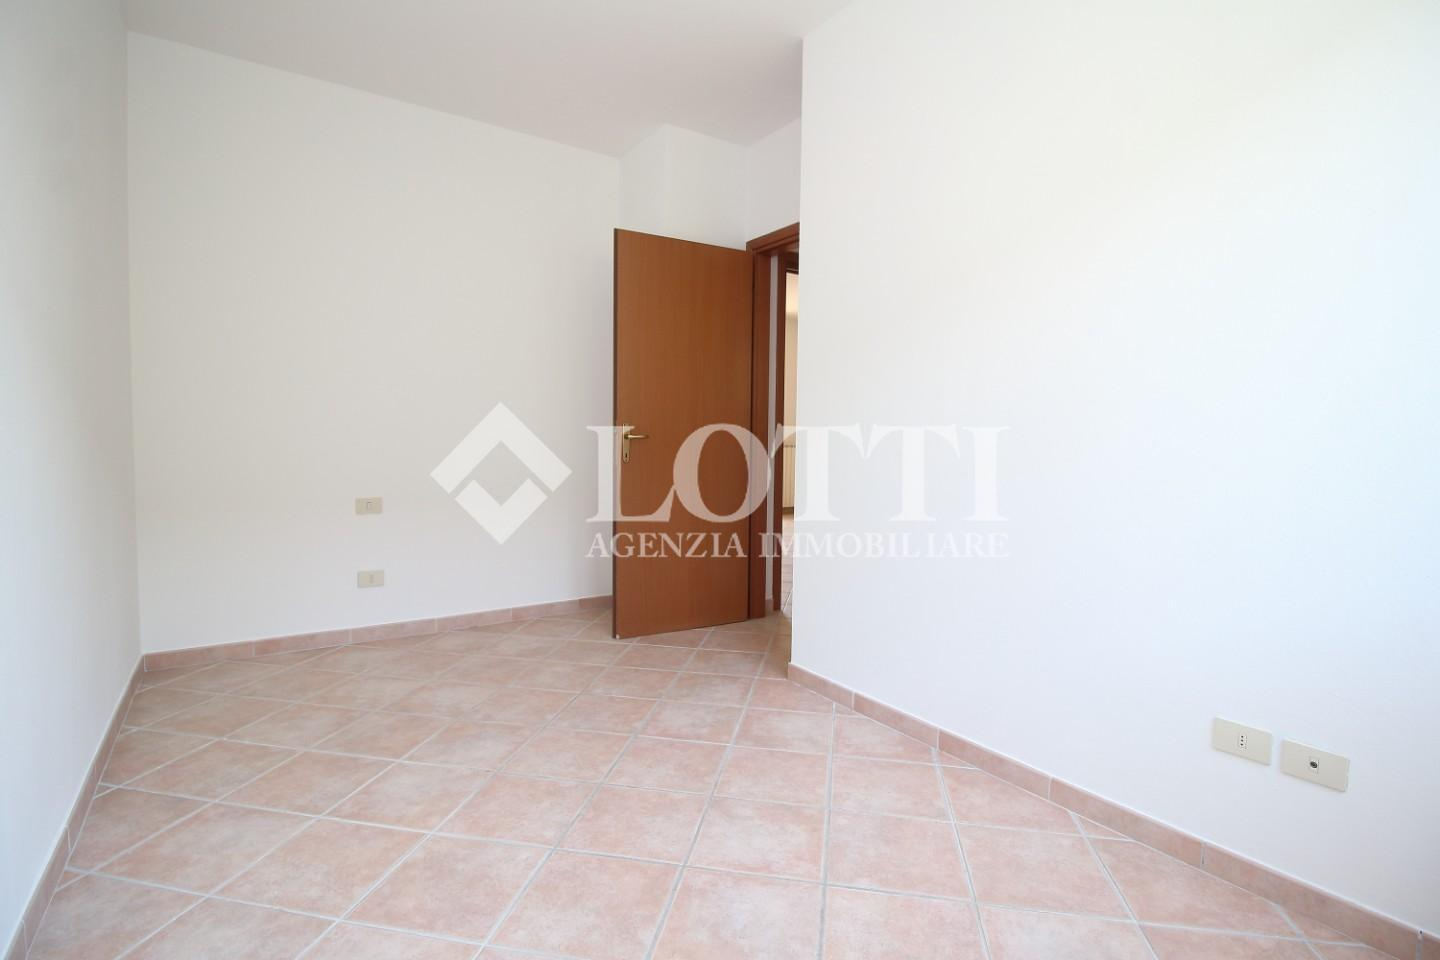 Apartment for sale, ref. 635